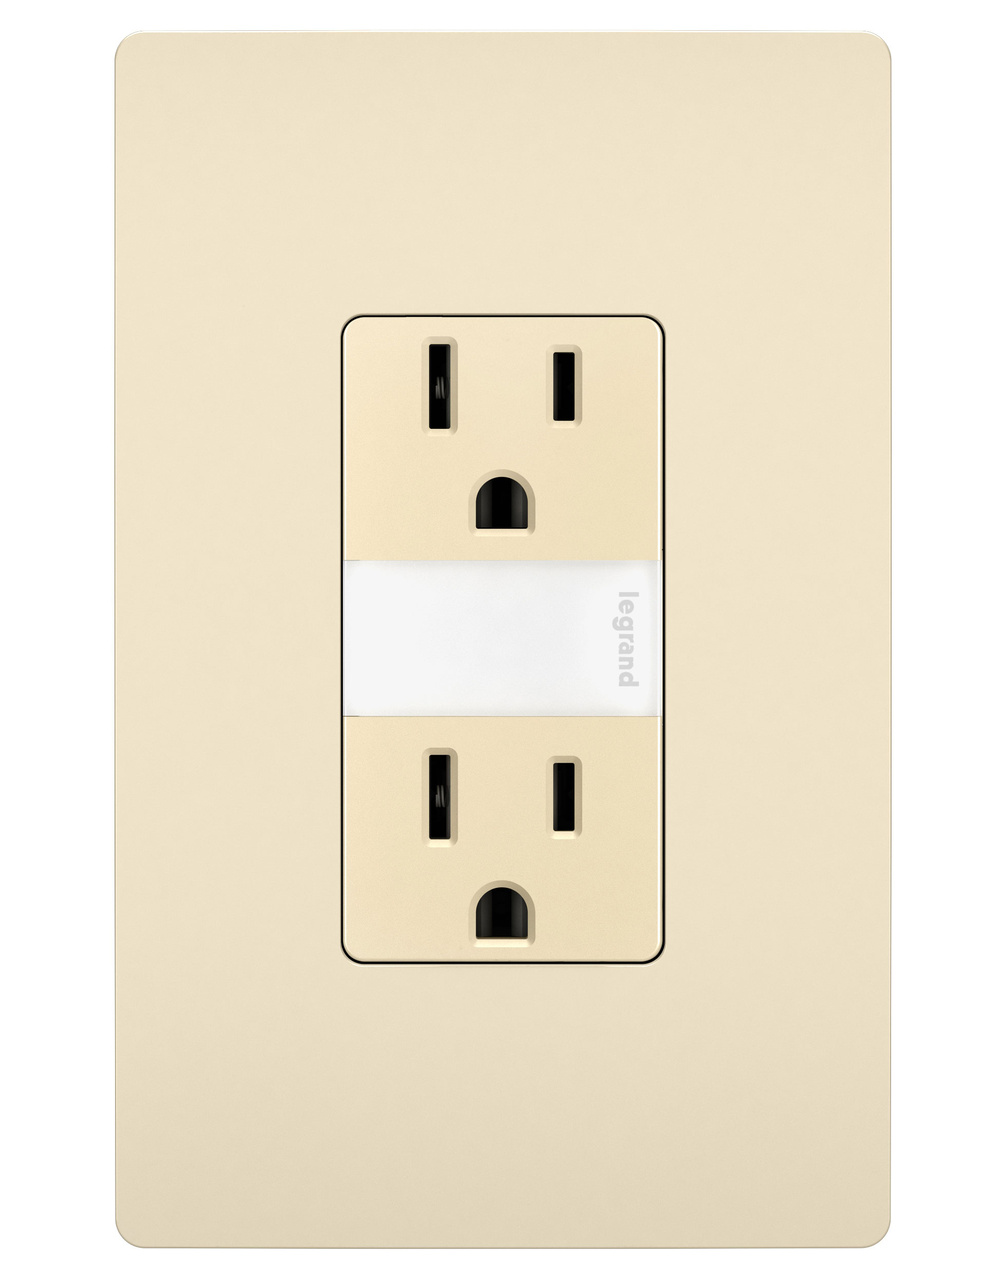 Night Light with Two 15A Tamper-Resistant Outlets, Light Almond